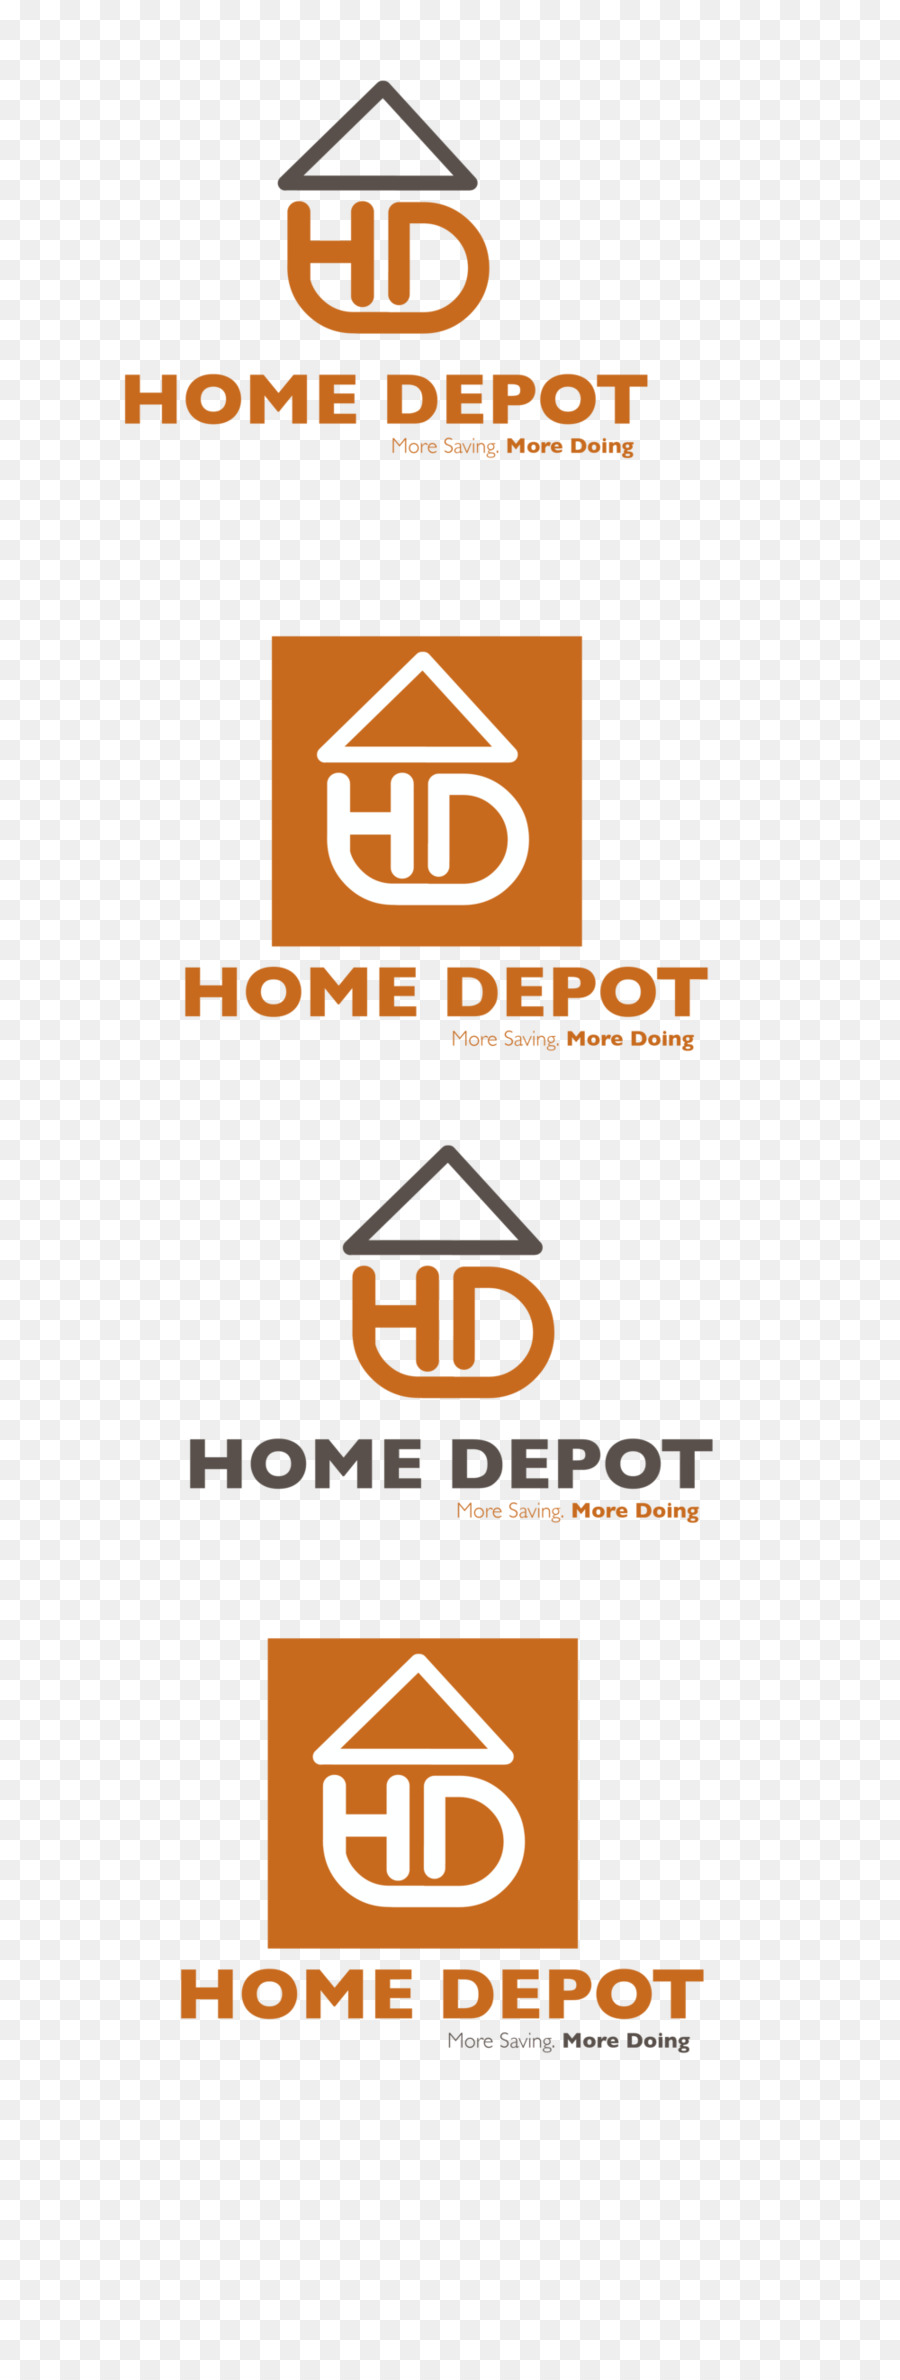 Logo Rebranding The Home Depot Others Png Download 10002643